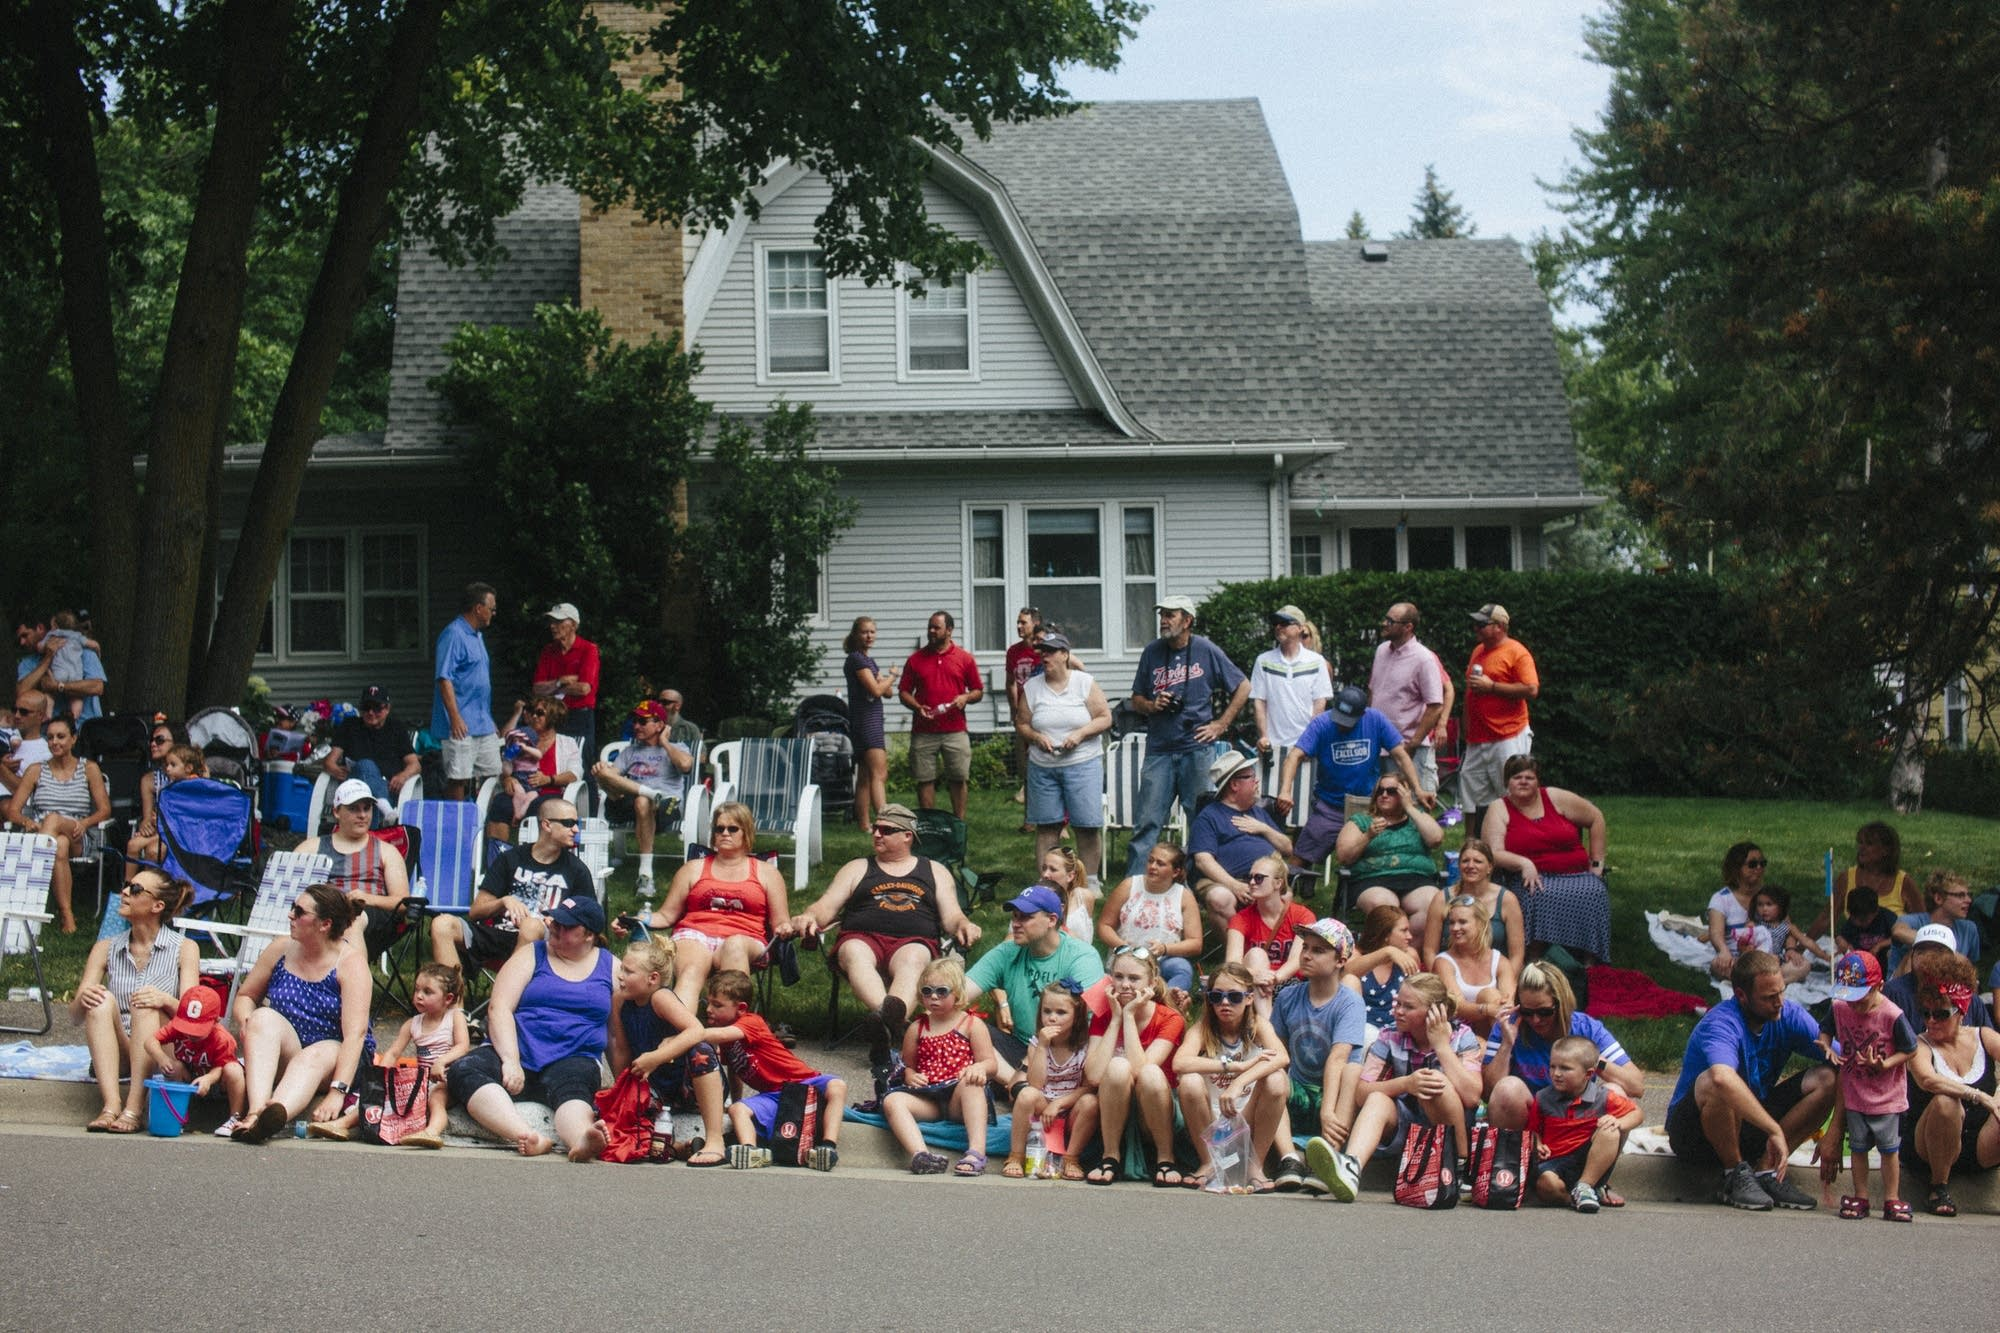 Parade-goers watch floats pass by.